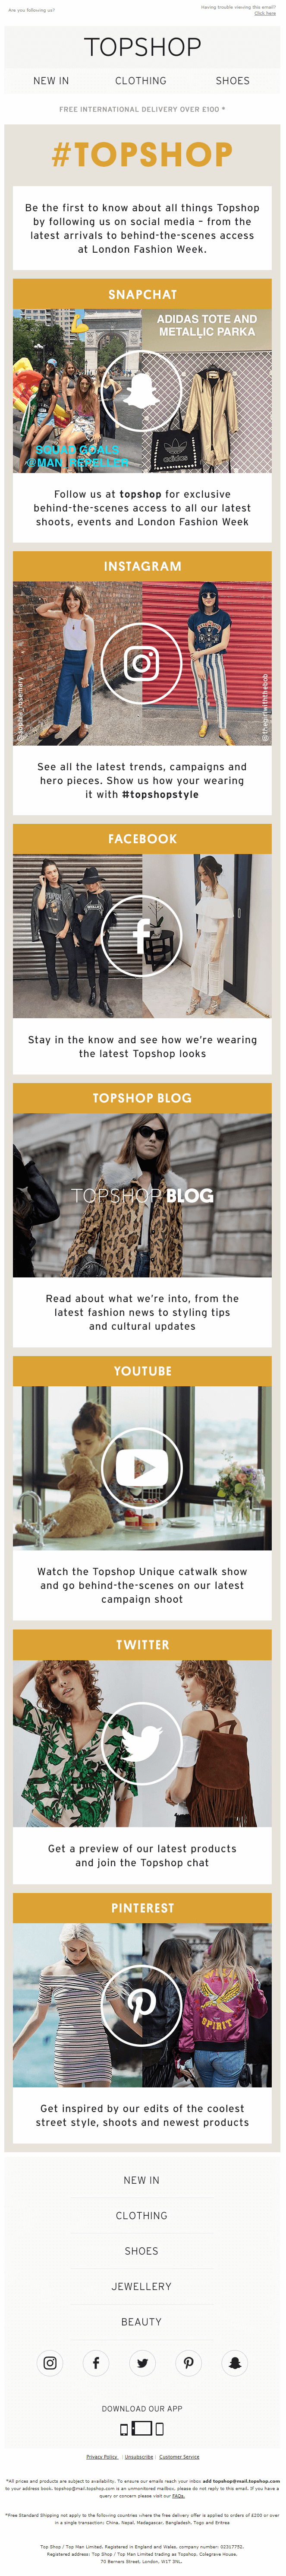 TopShop-welcome-email-series